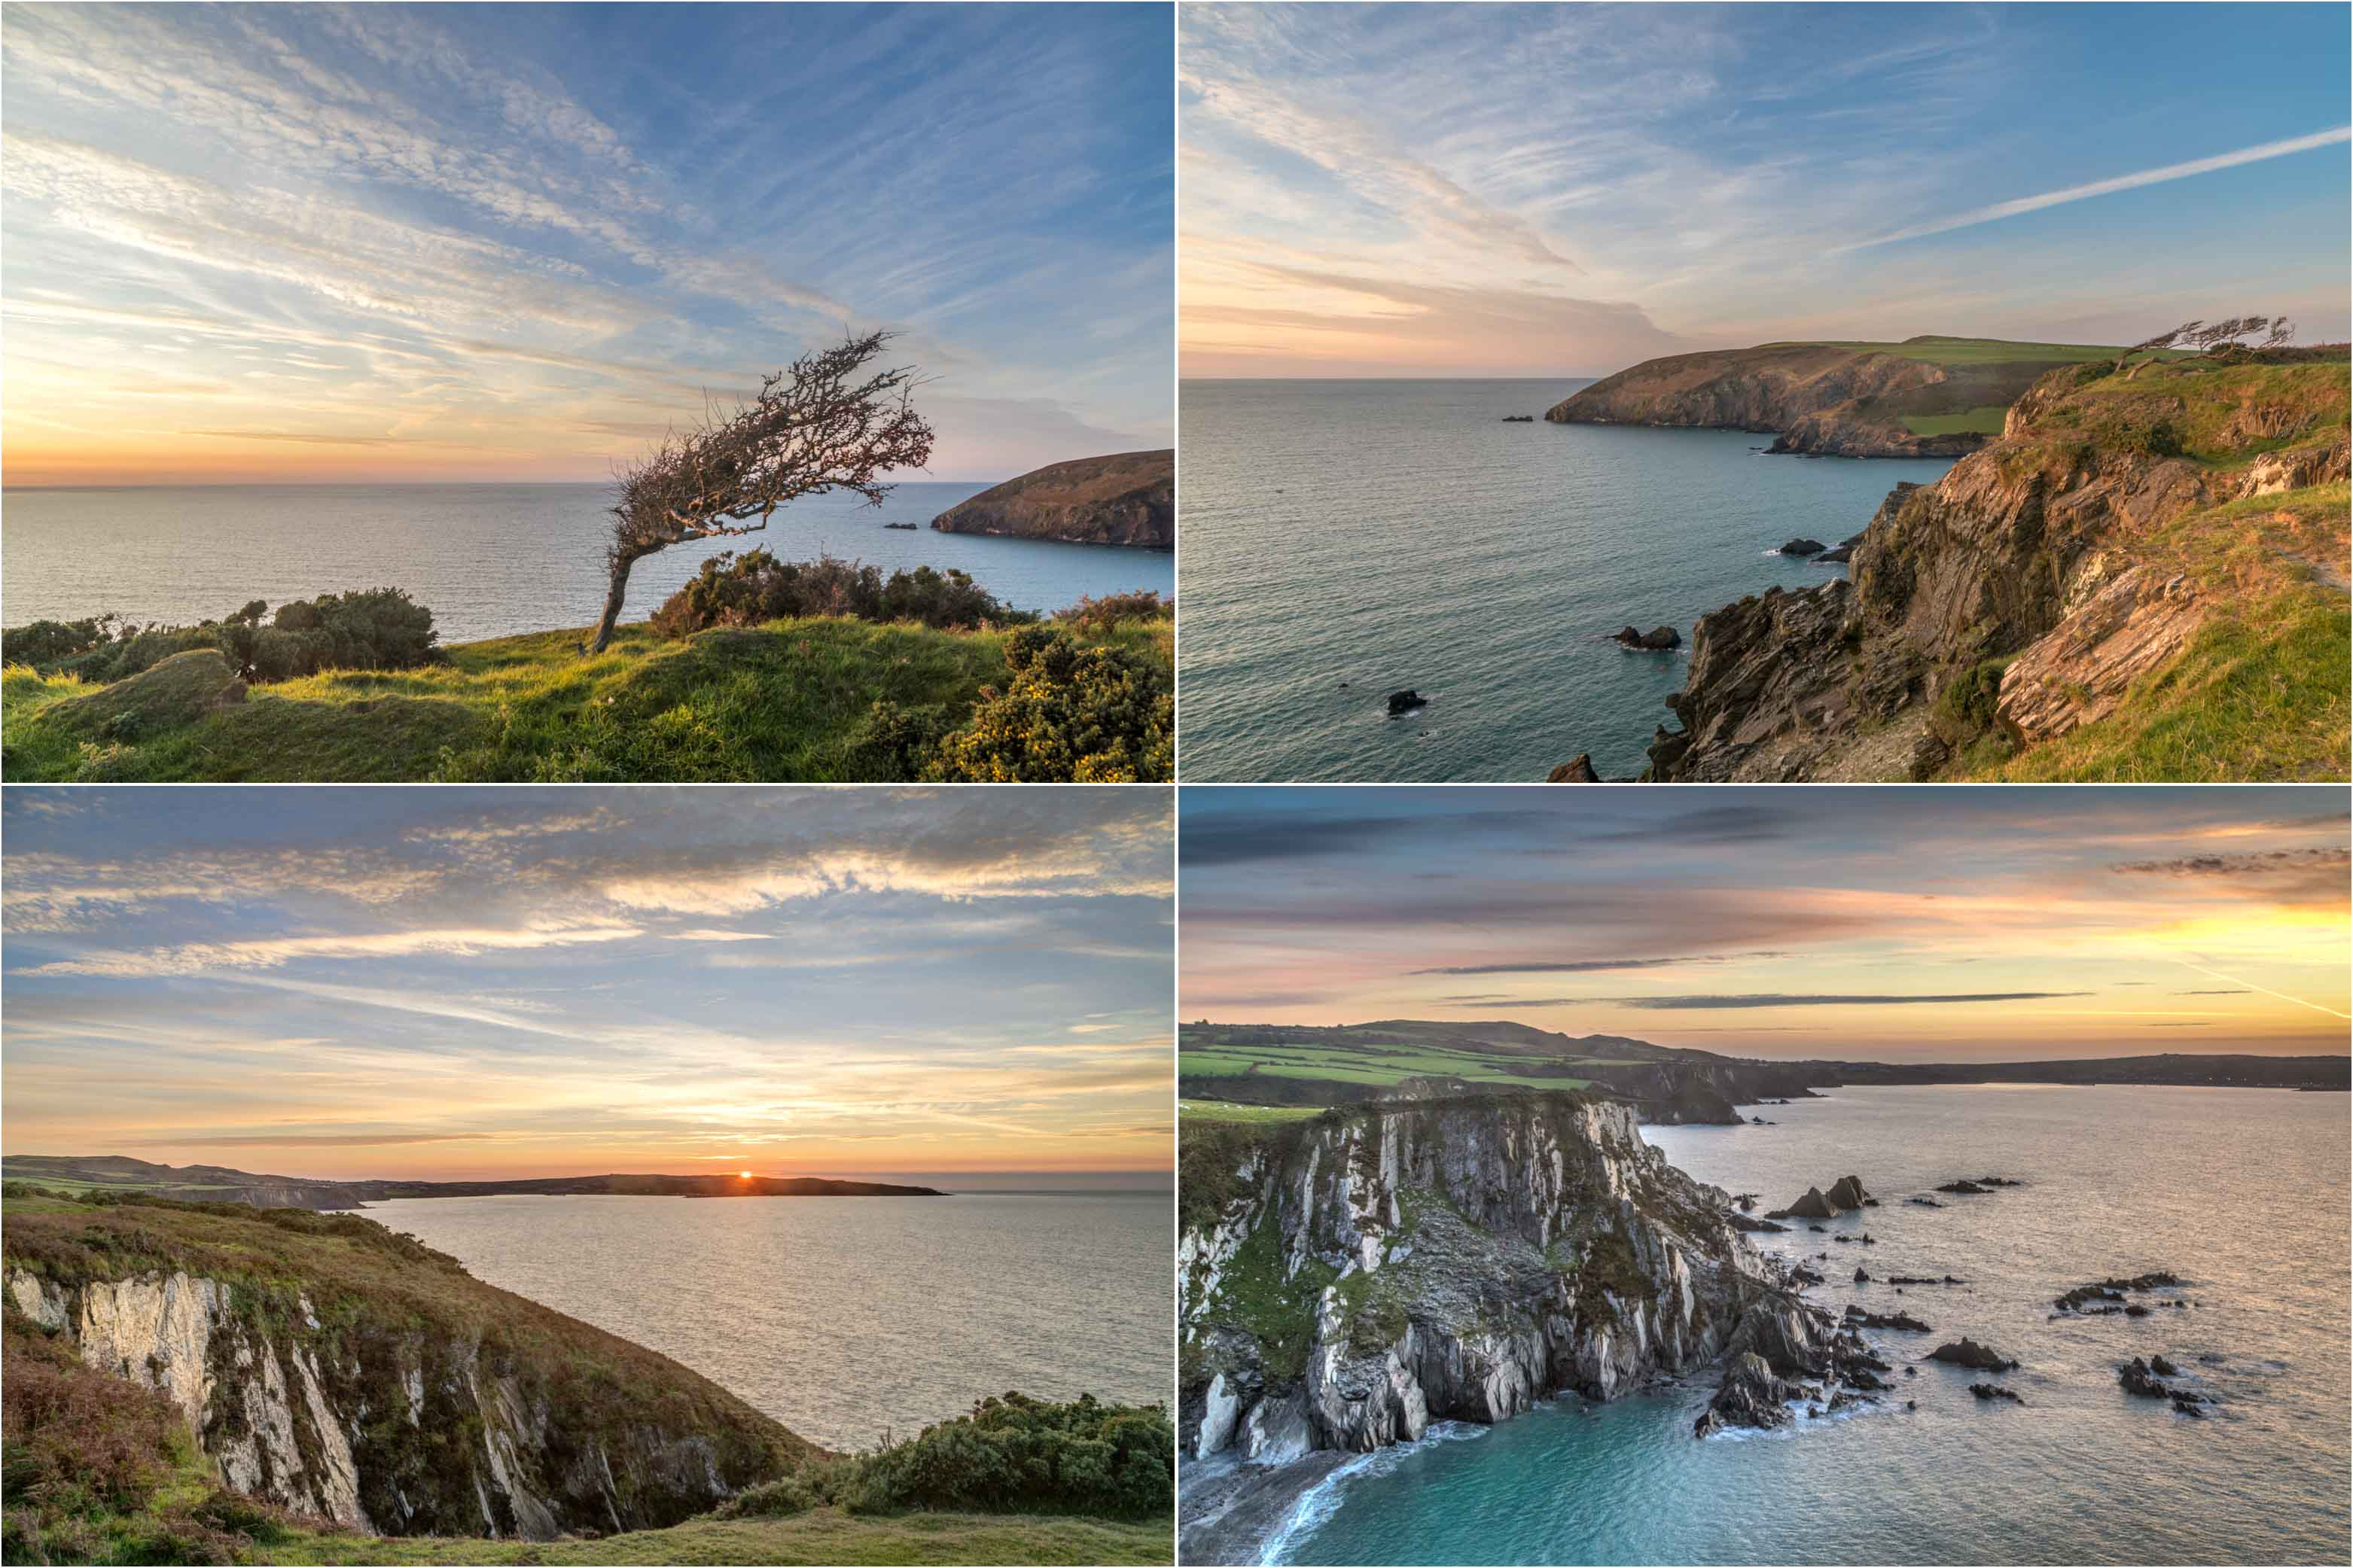 Pembrokeshire coast sunset, Fishguard Bay